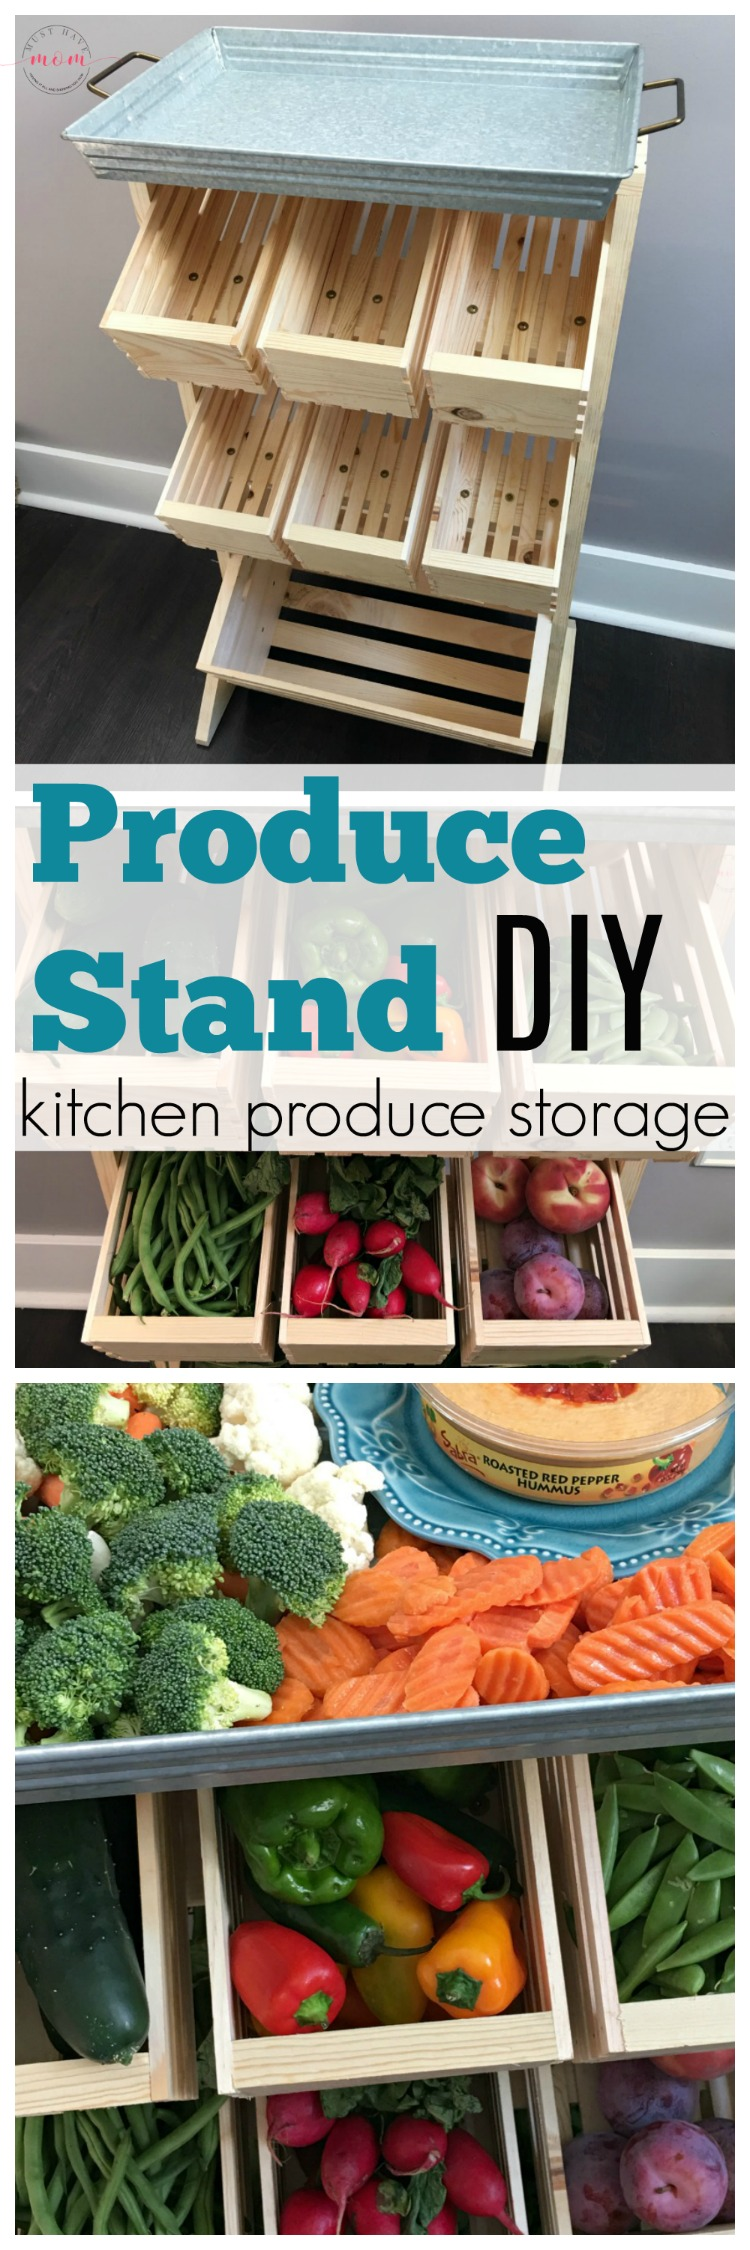 Farmhouse style produce storage. Produce stand DIY tutorial with farmer's market veggie ideas!